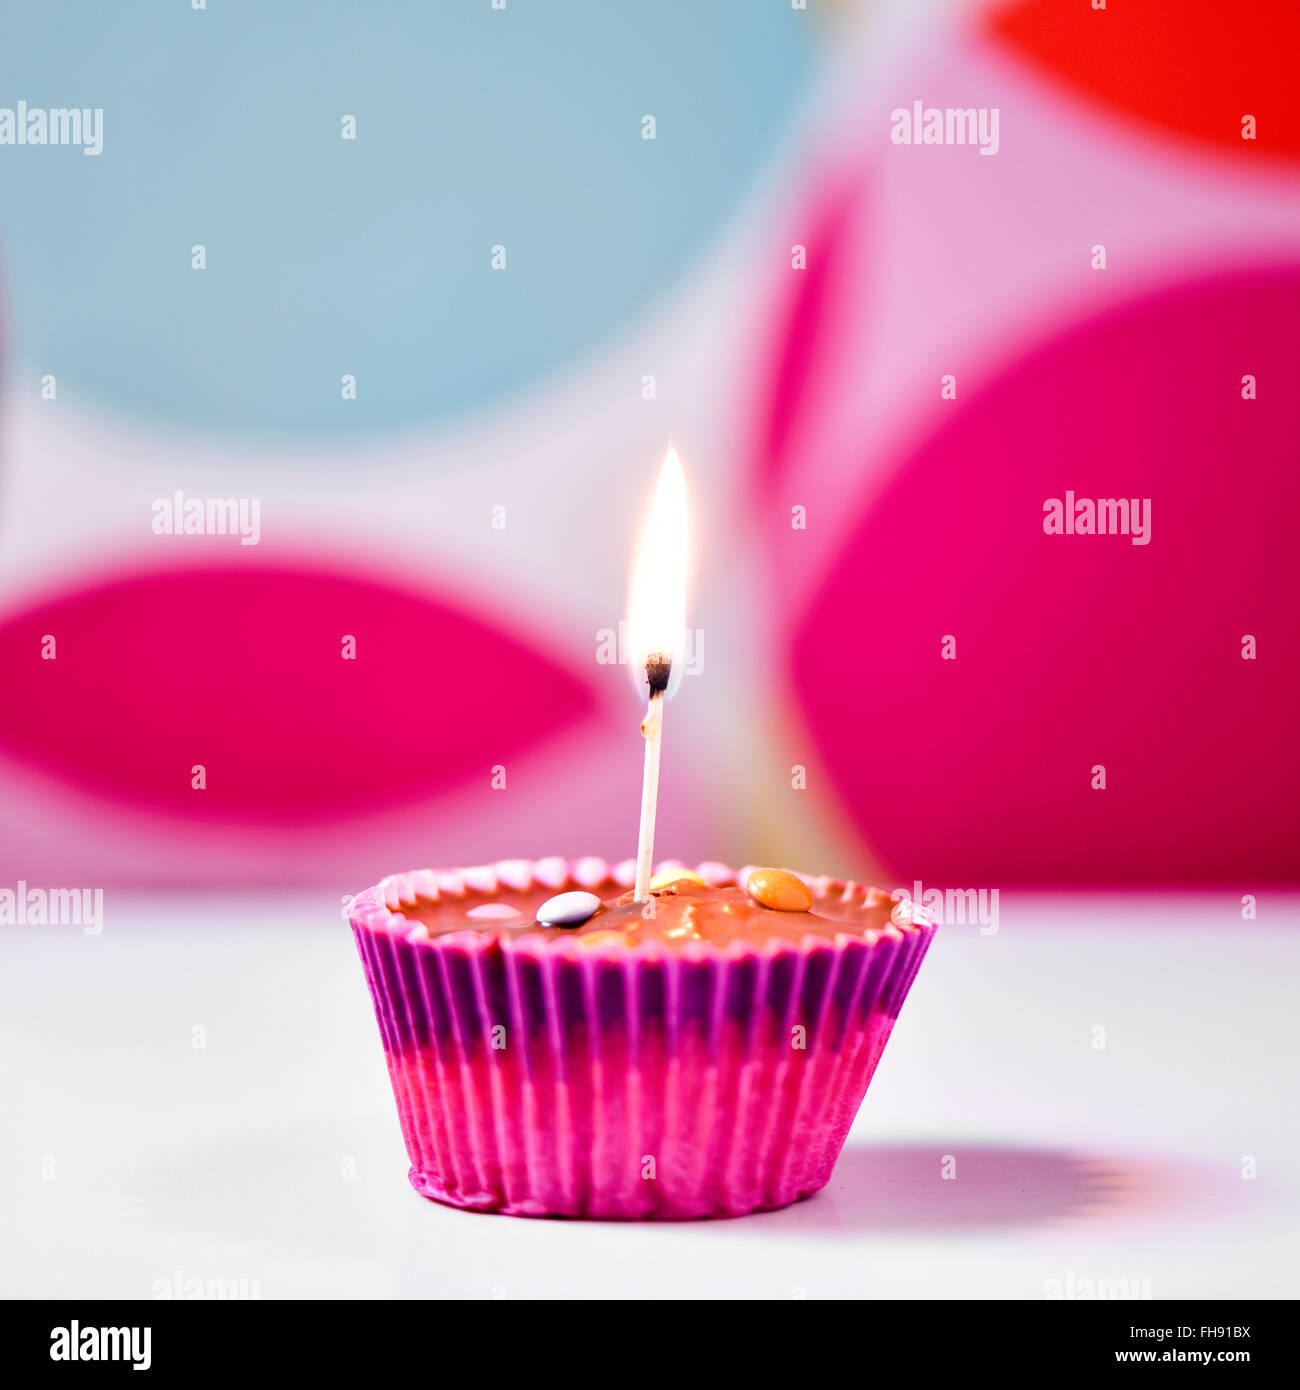 a chocolate cupcake topped with a lighted match on a white surface against a colorful geometric-patterned background - Stock Image